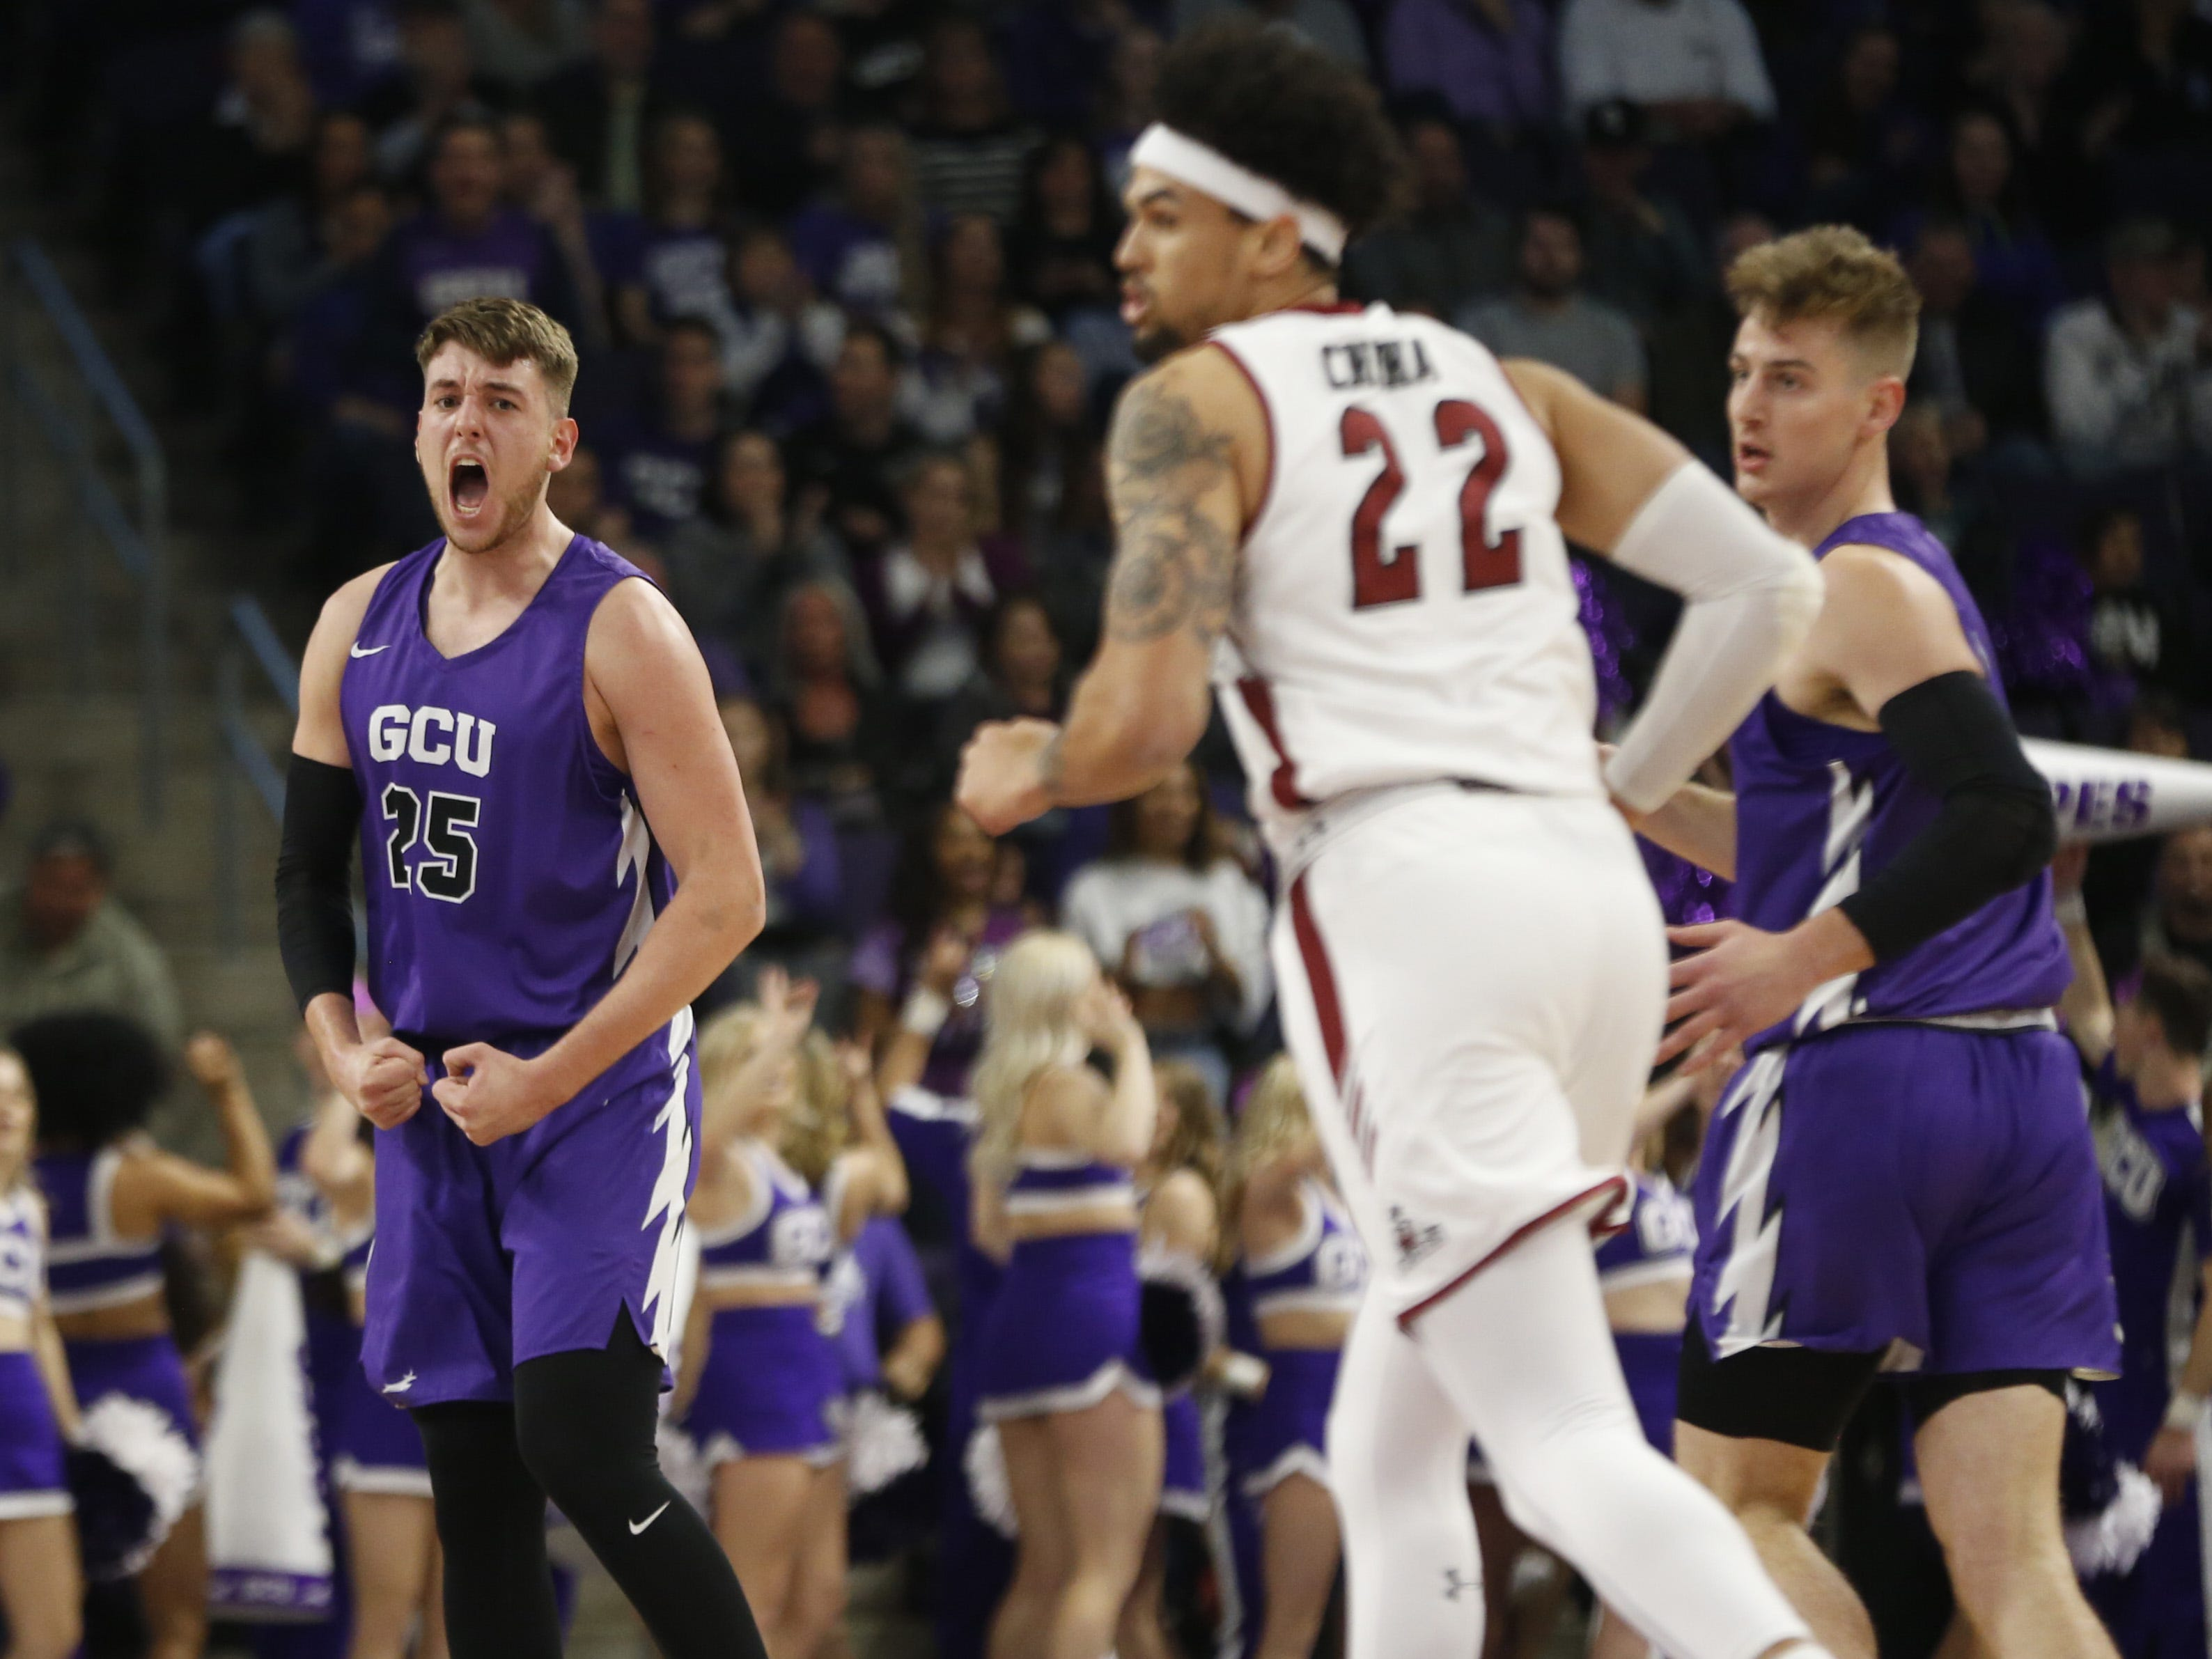 GCU's Alessandro Lever (25) reacts after scoring against New Mexico State during the first half at Grand Canyon University Arena in Phoenix, Ariz. on February 9, 2019.